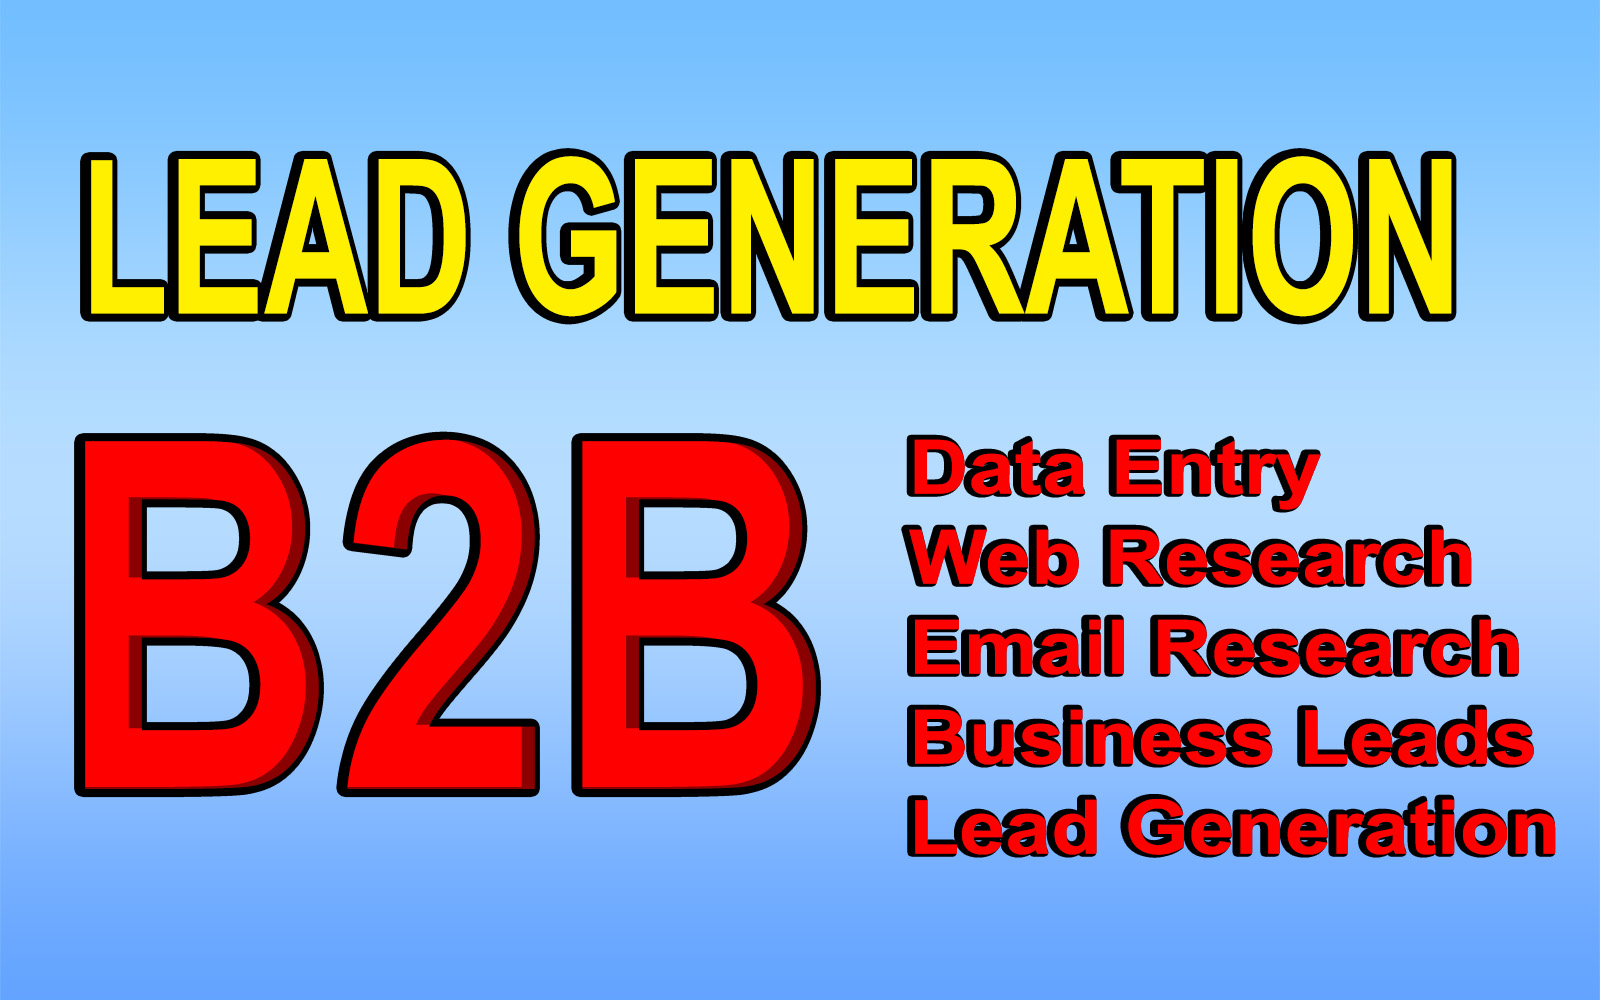 I will collect targeted B2B Lead Generation